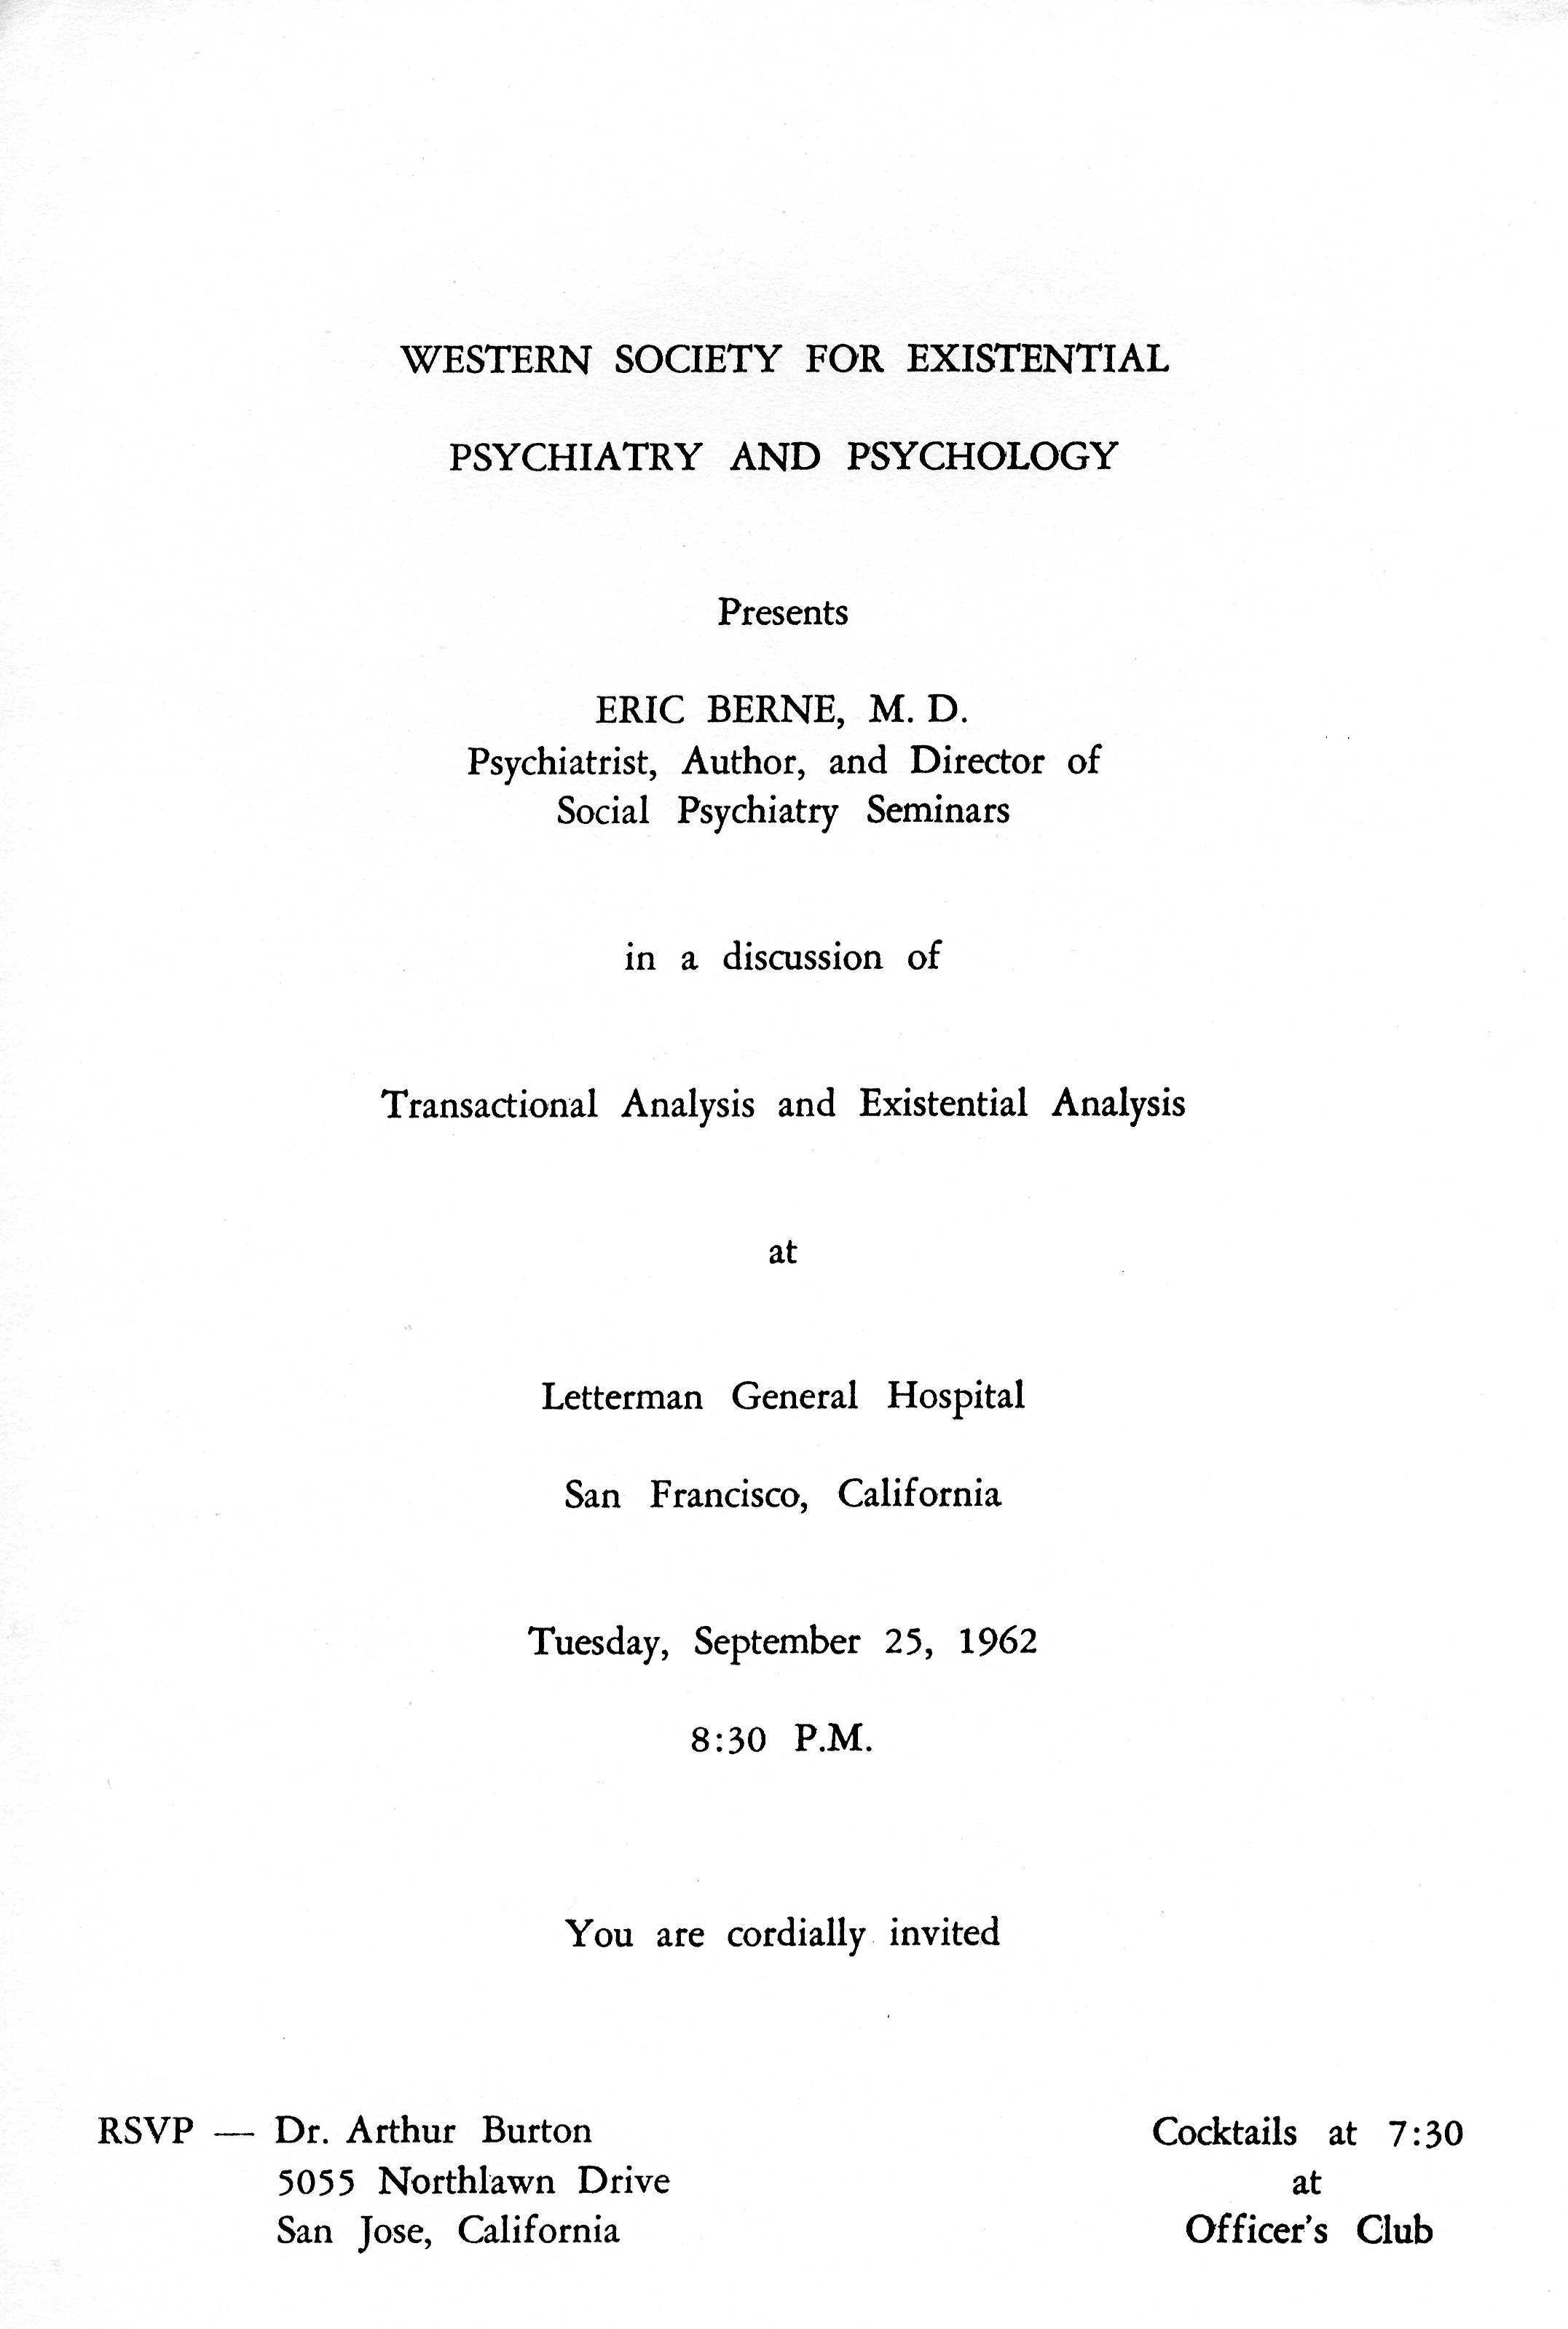 Flyer for Eric Berne's discussion of Transactional Analysis and Existential Analysis for the Western Society for Existential Psychiatry and Psychology